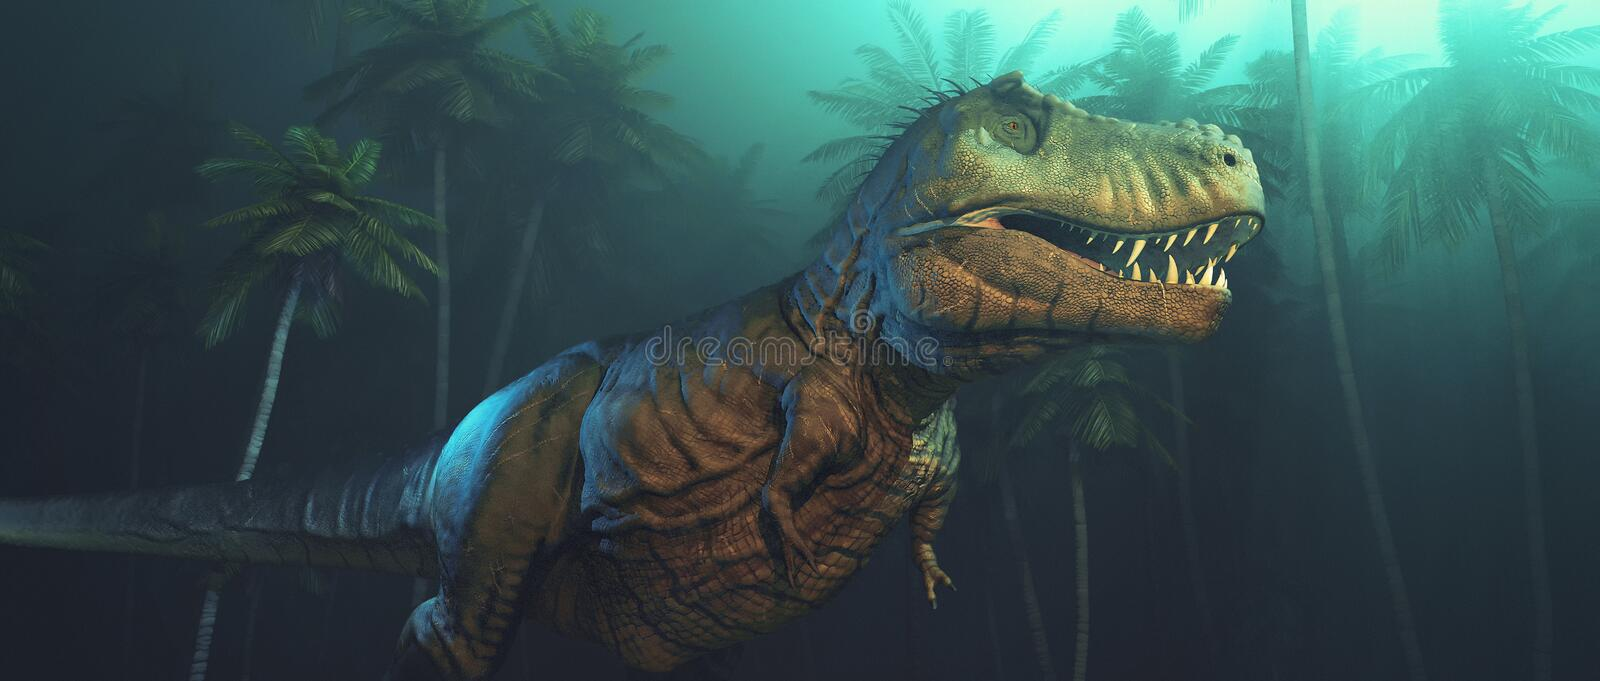 Dino dinosaurs with large fangs. In a forest. This is a 3d render illustration royalty free illustration